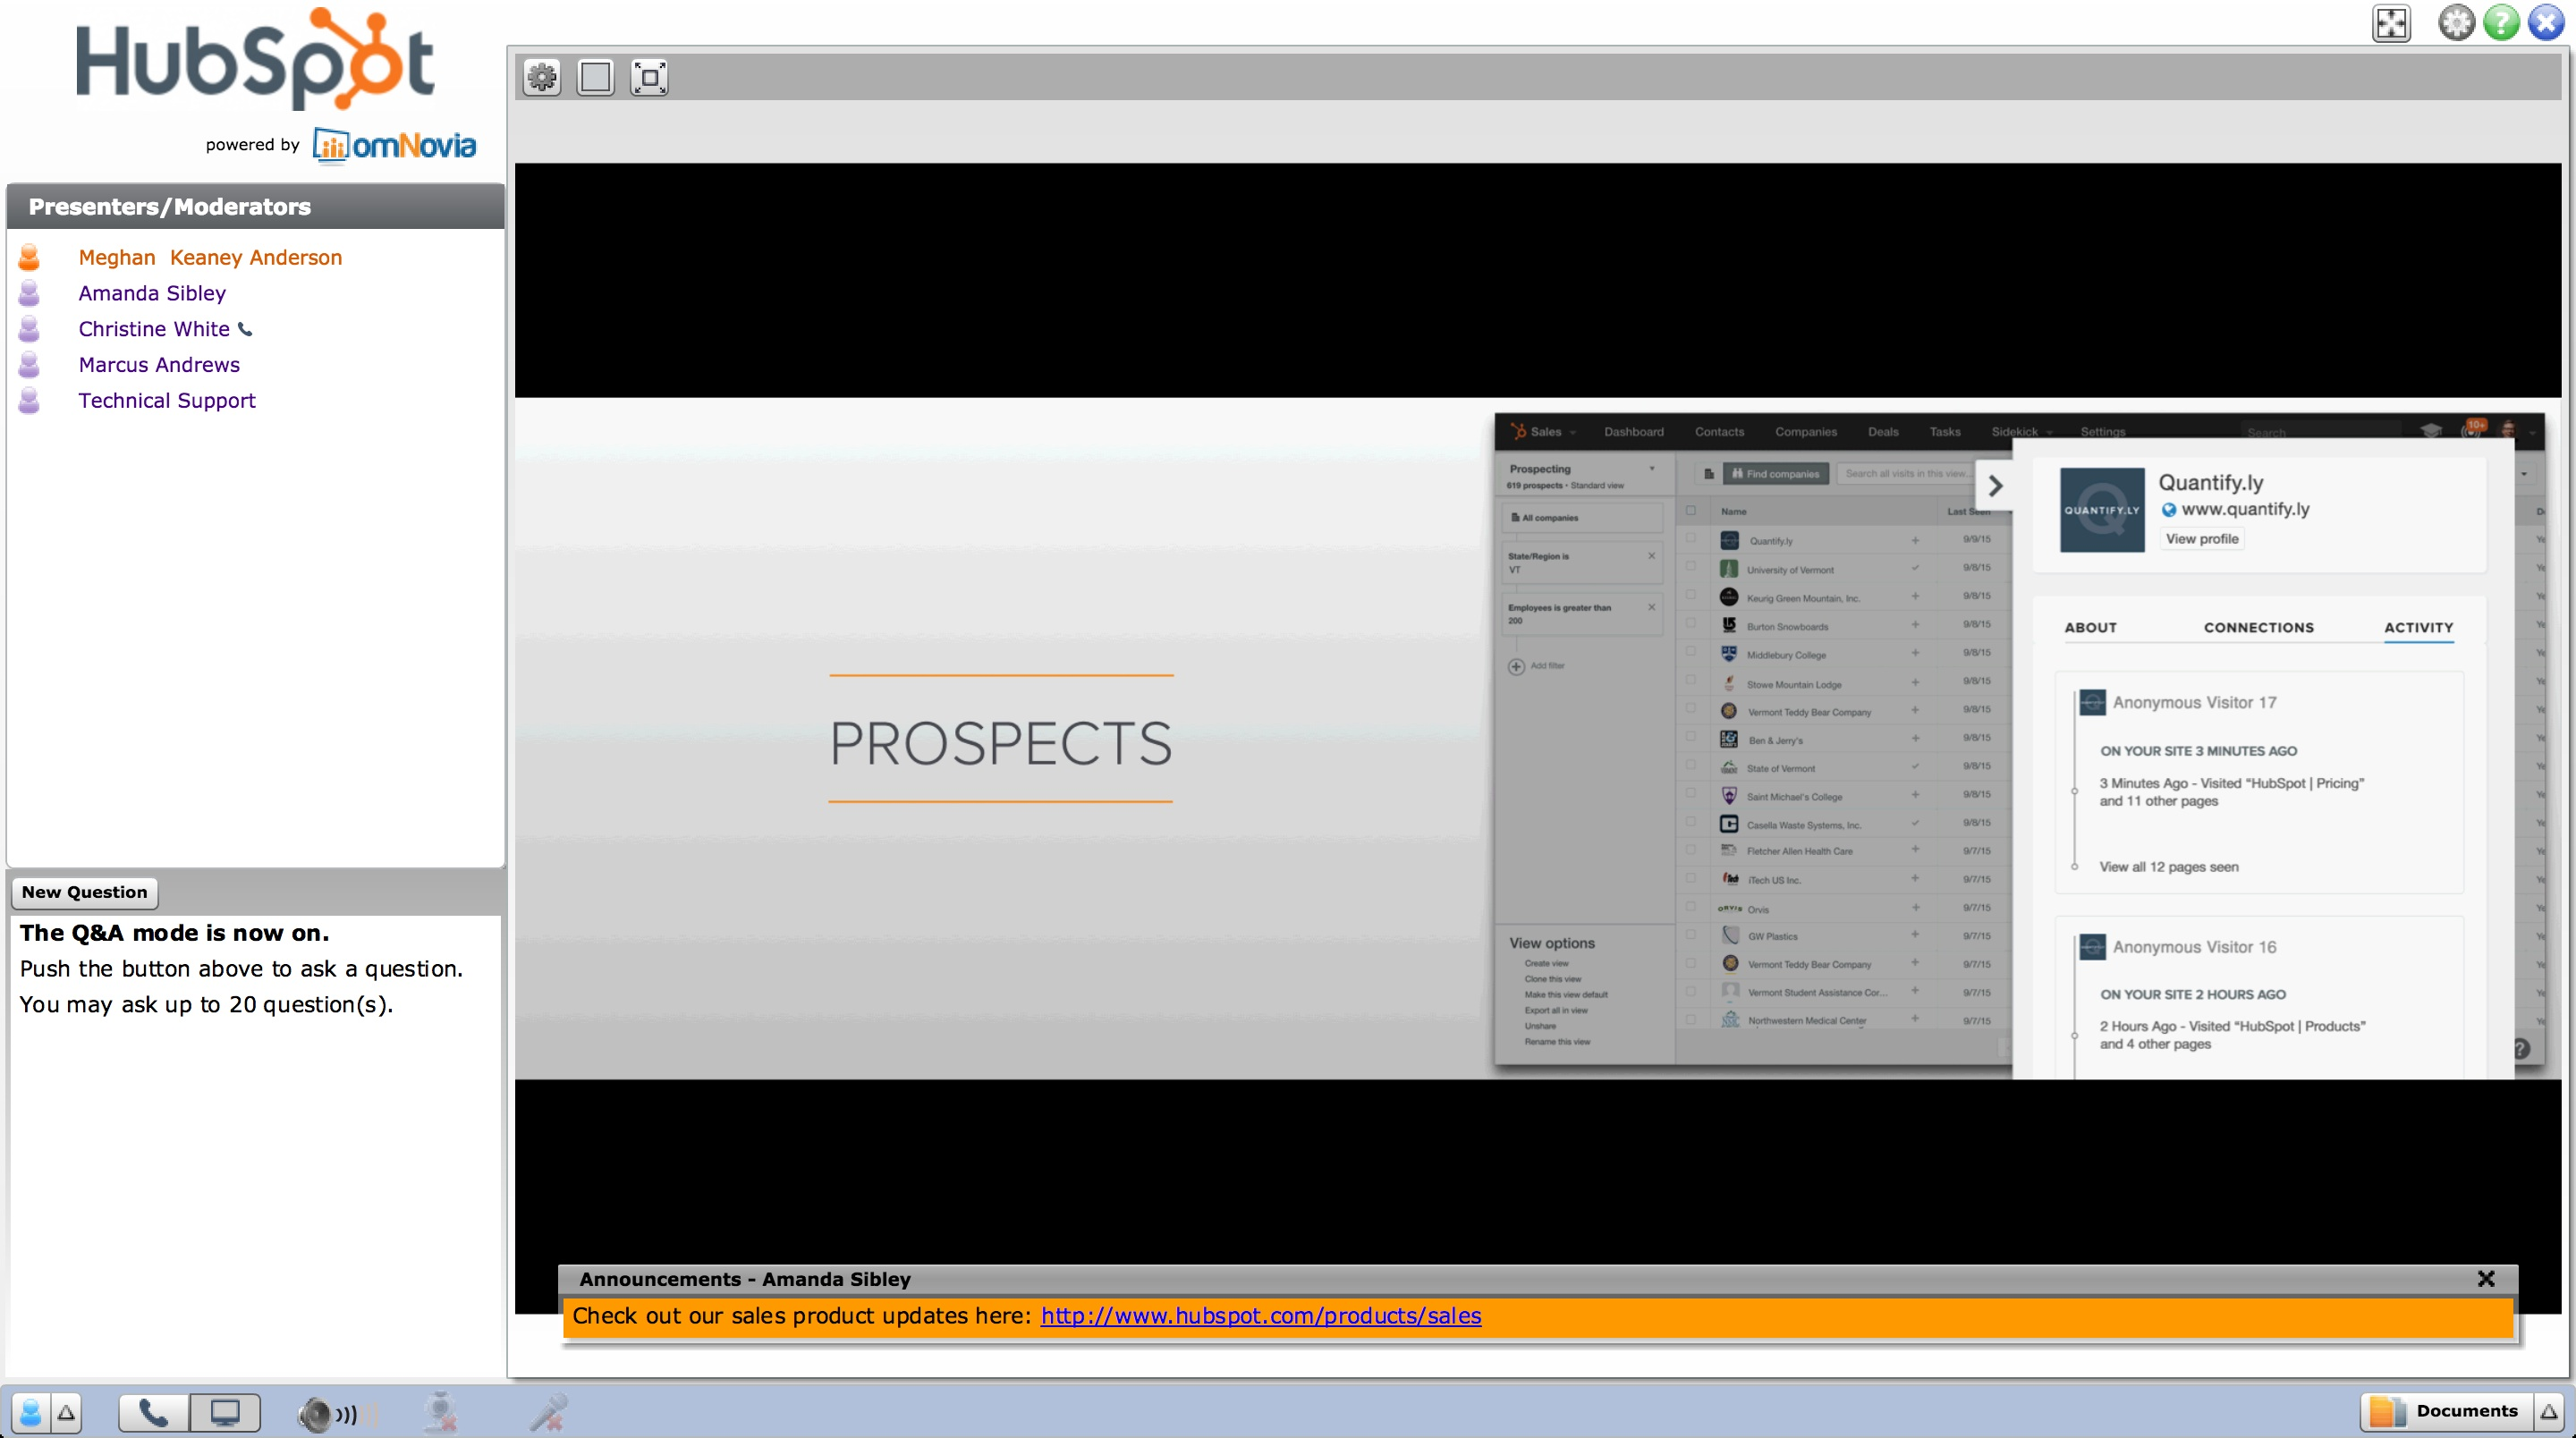 HubSpot Product Launch Webinar Promotion